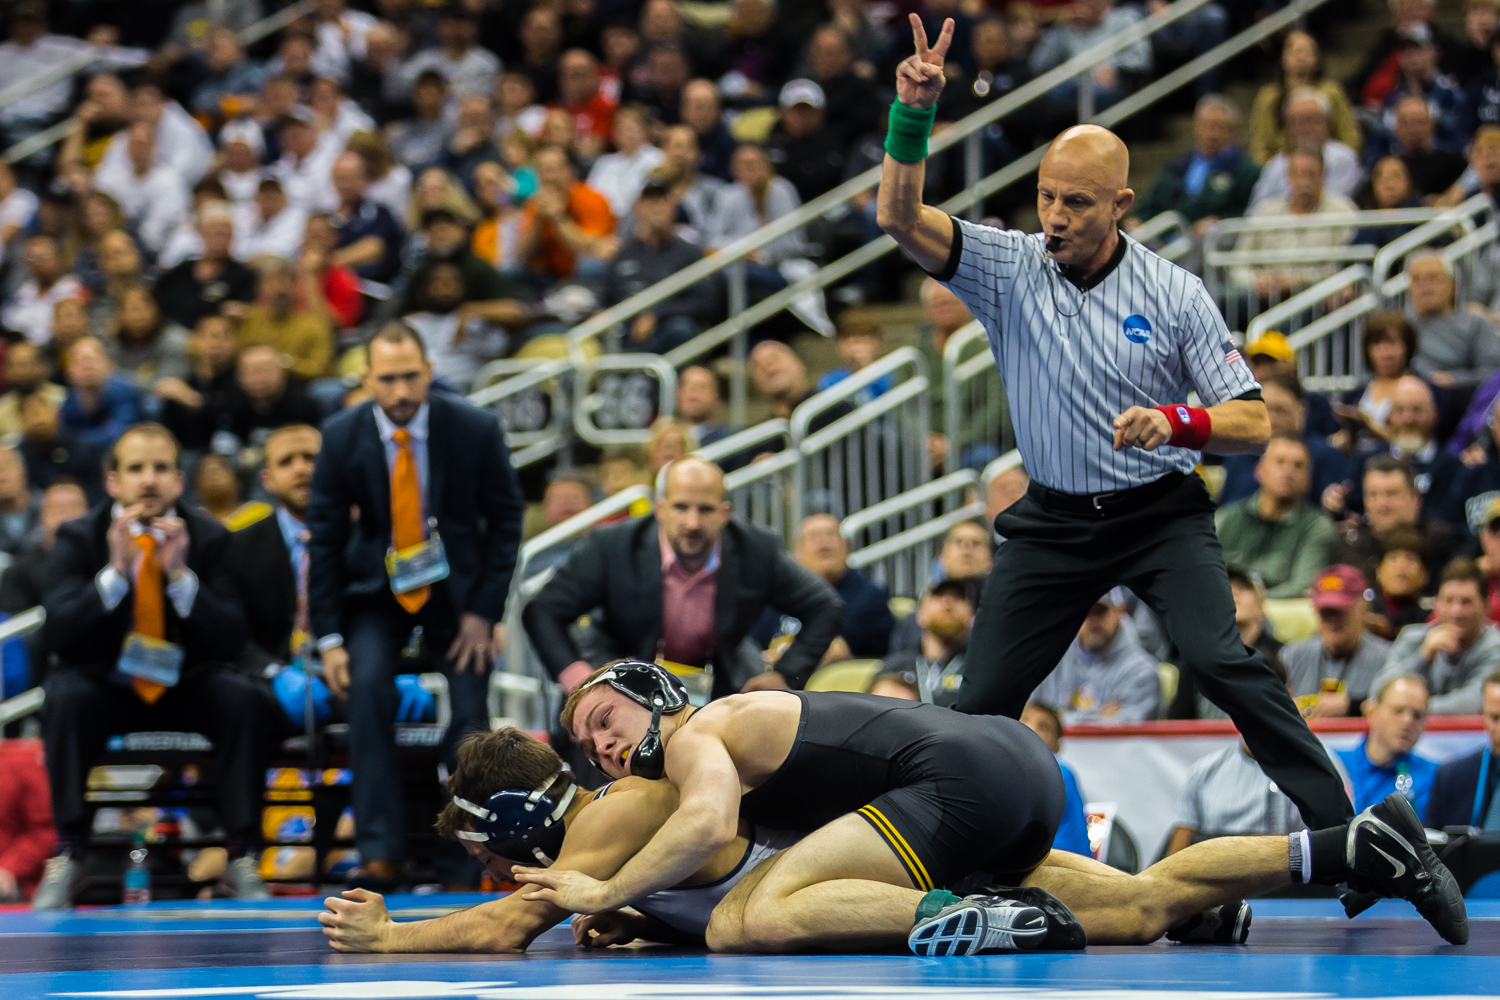 Iowa%E2%80%99s+125-pound+Spencer+Lee+wrestles+Virginia%E2%80%99s+Jack+Mueller+during+the+final+session+of+the+2019+NCAA+D1+Wrestling+Championships+at+PPG+Paints+Arena+in+Pittsburgh%2C+PA+on+Saturday%2C+March+23%2C+2019.+Lee+won+by+decision%2C+5-0%2C+and+defended+his+national+title.